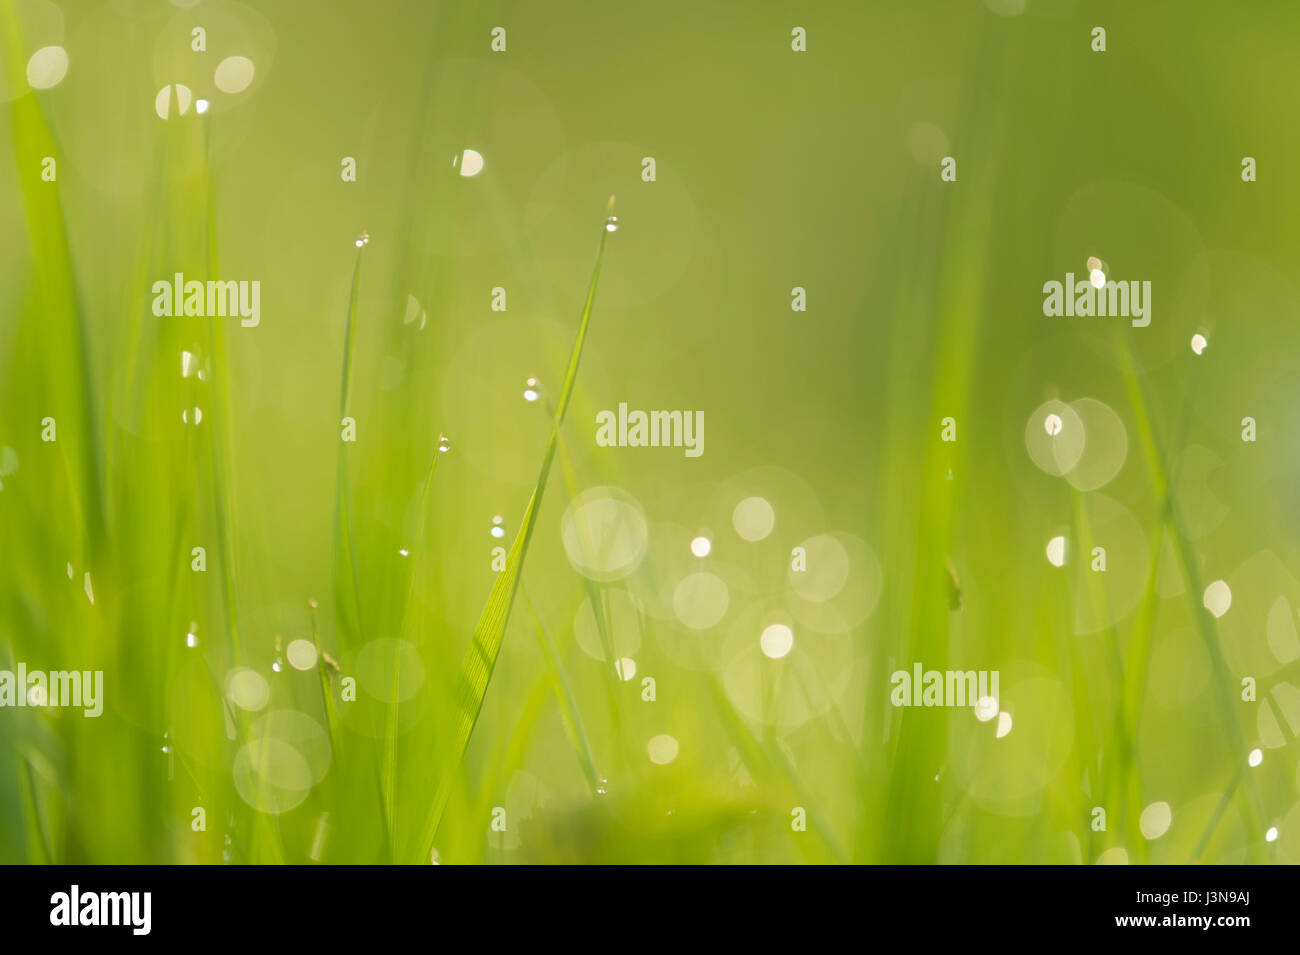 Brins d'herbe, Basse-Saxe, Allemagne Photo Stock